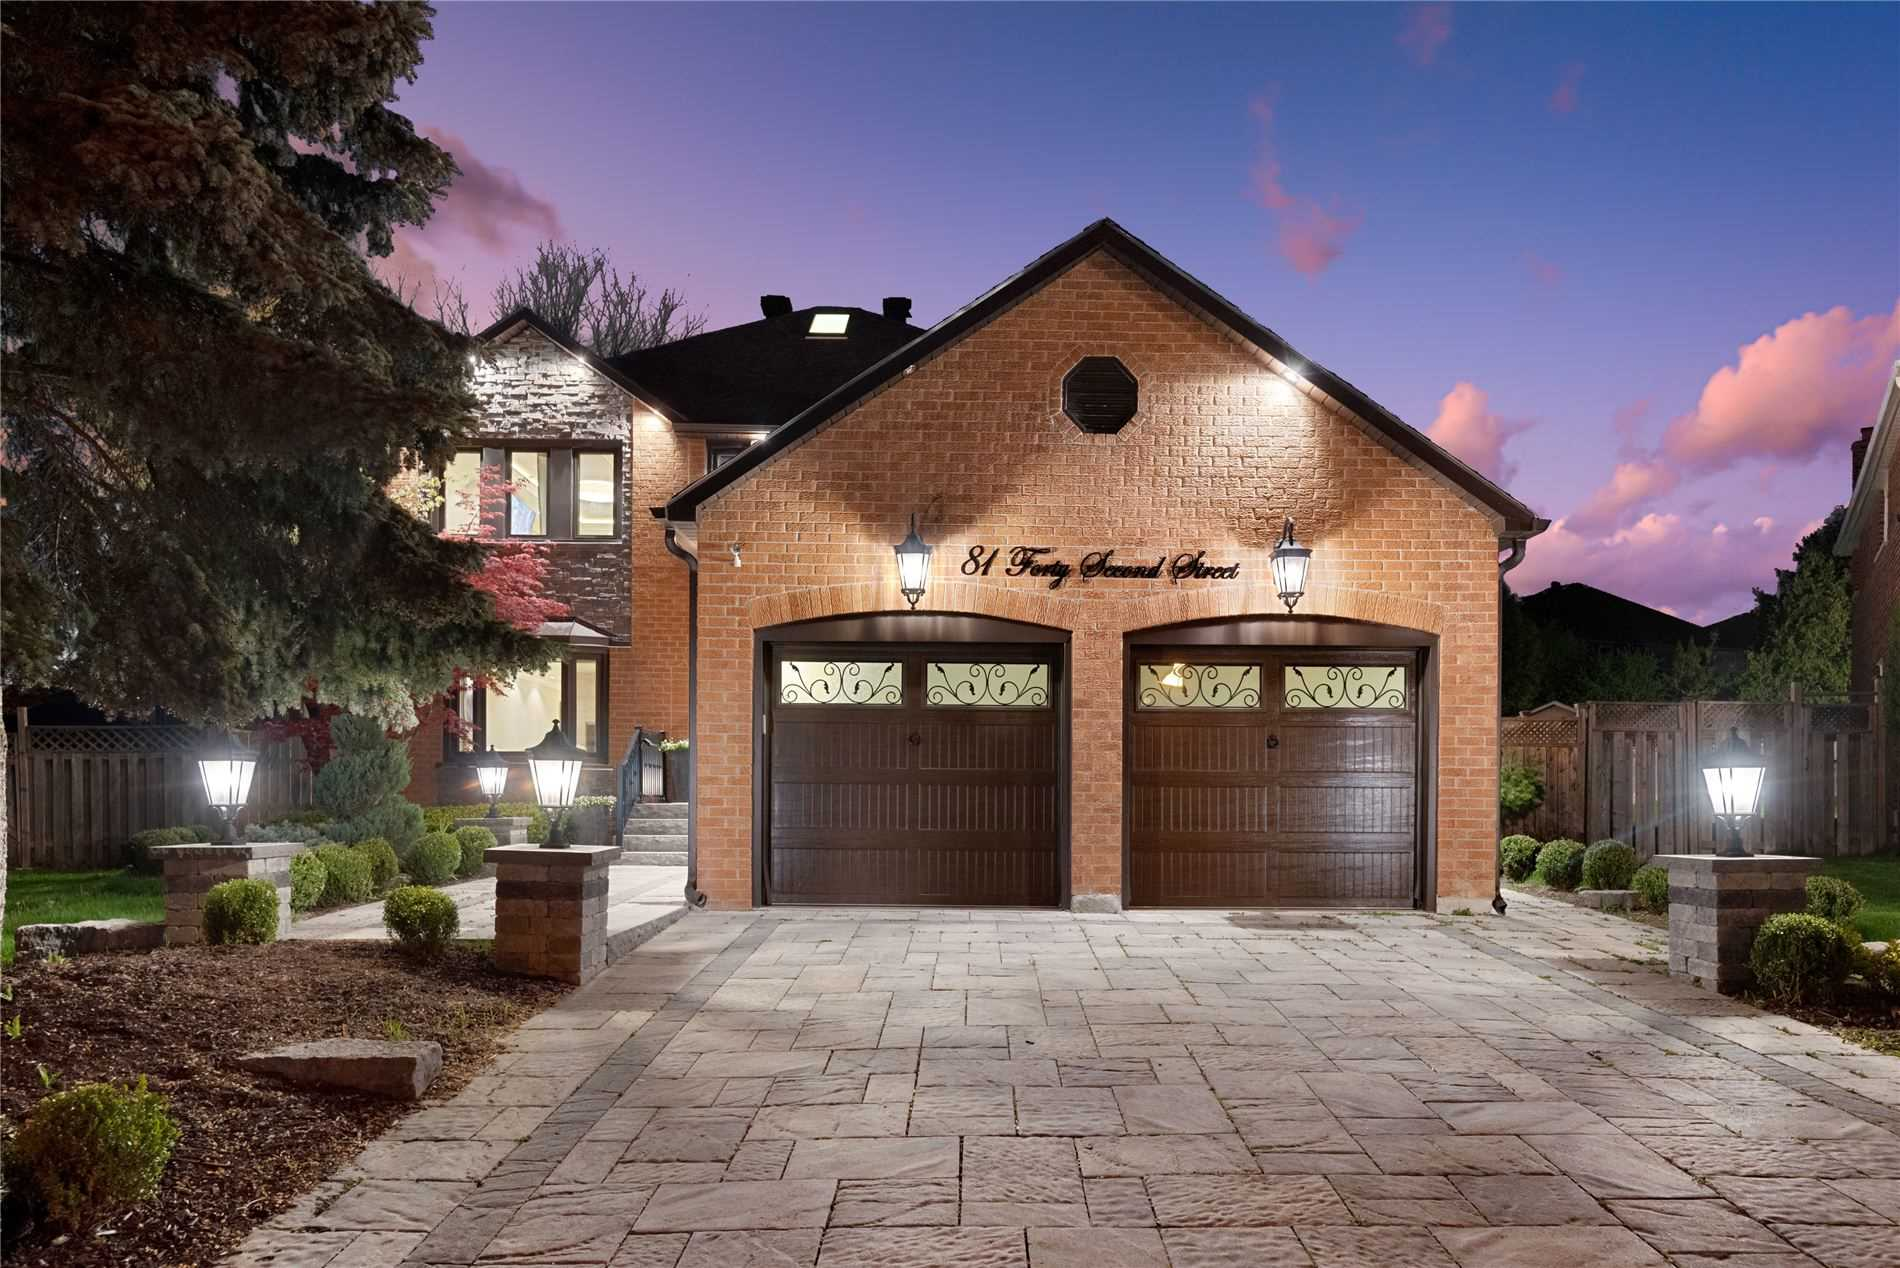 81 Forty Second St, Markham, Ontario